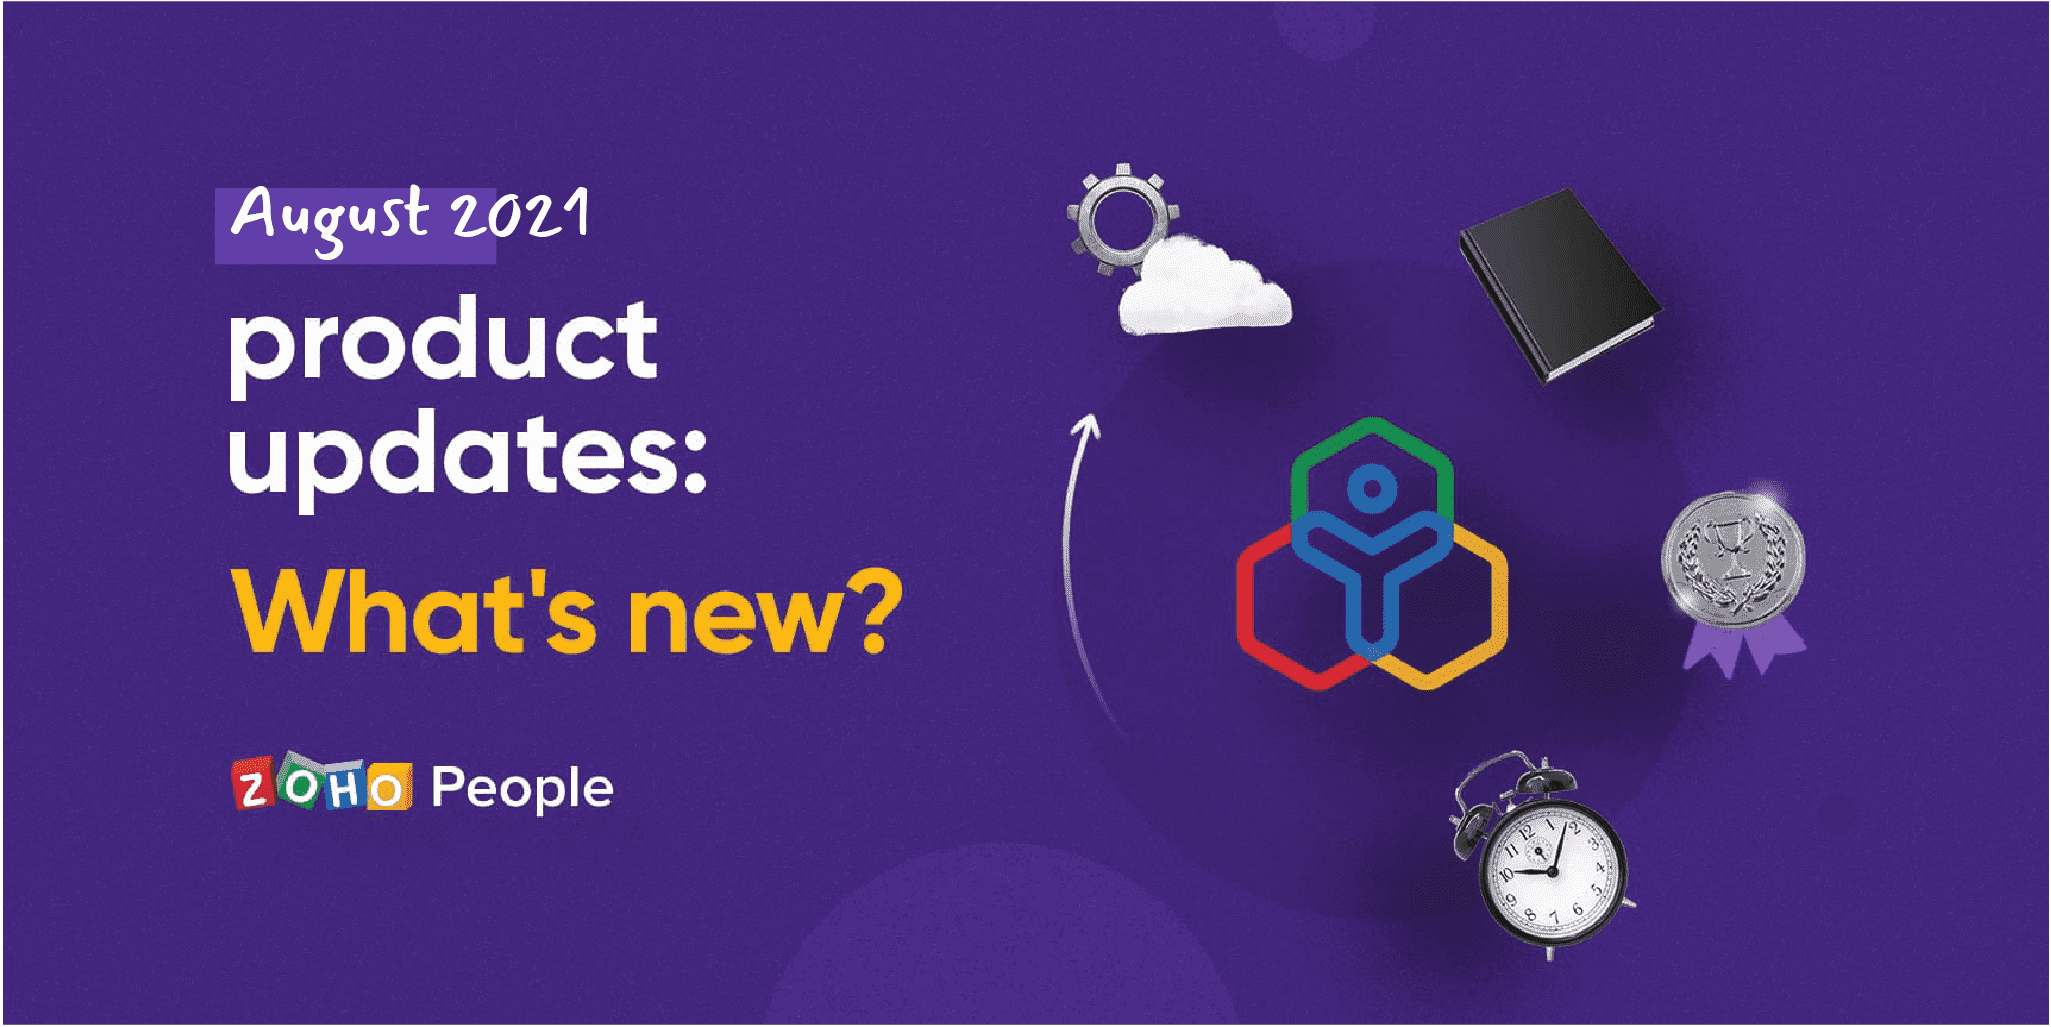 Zoho People product updates: August 2021